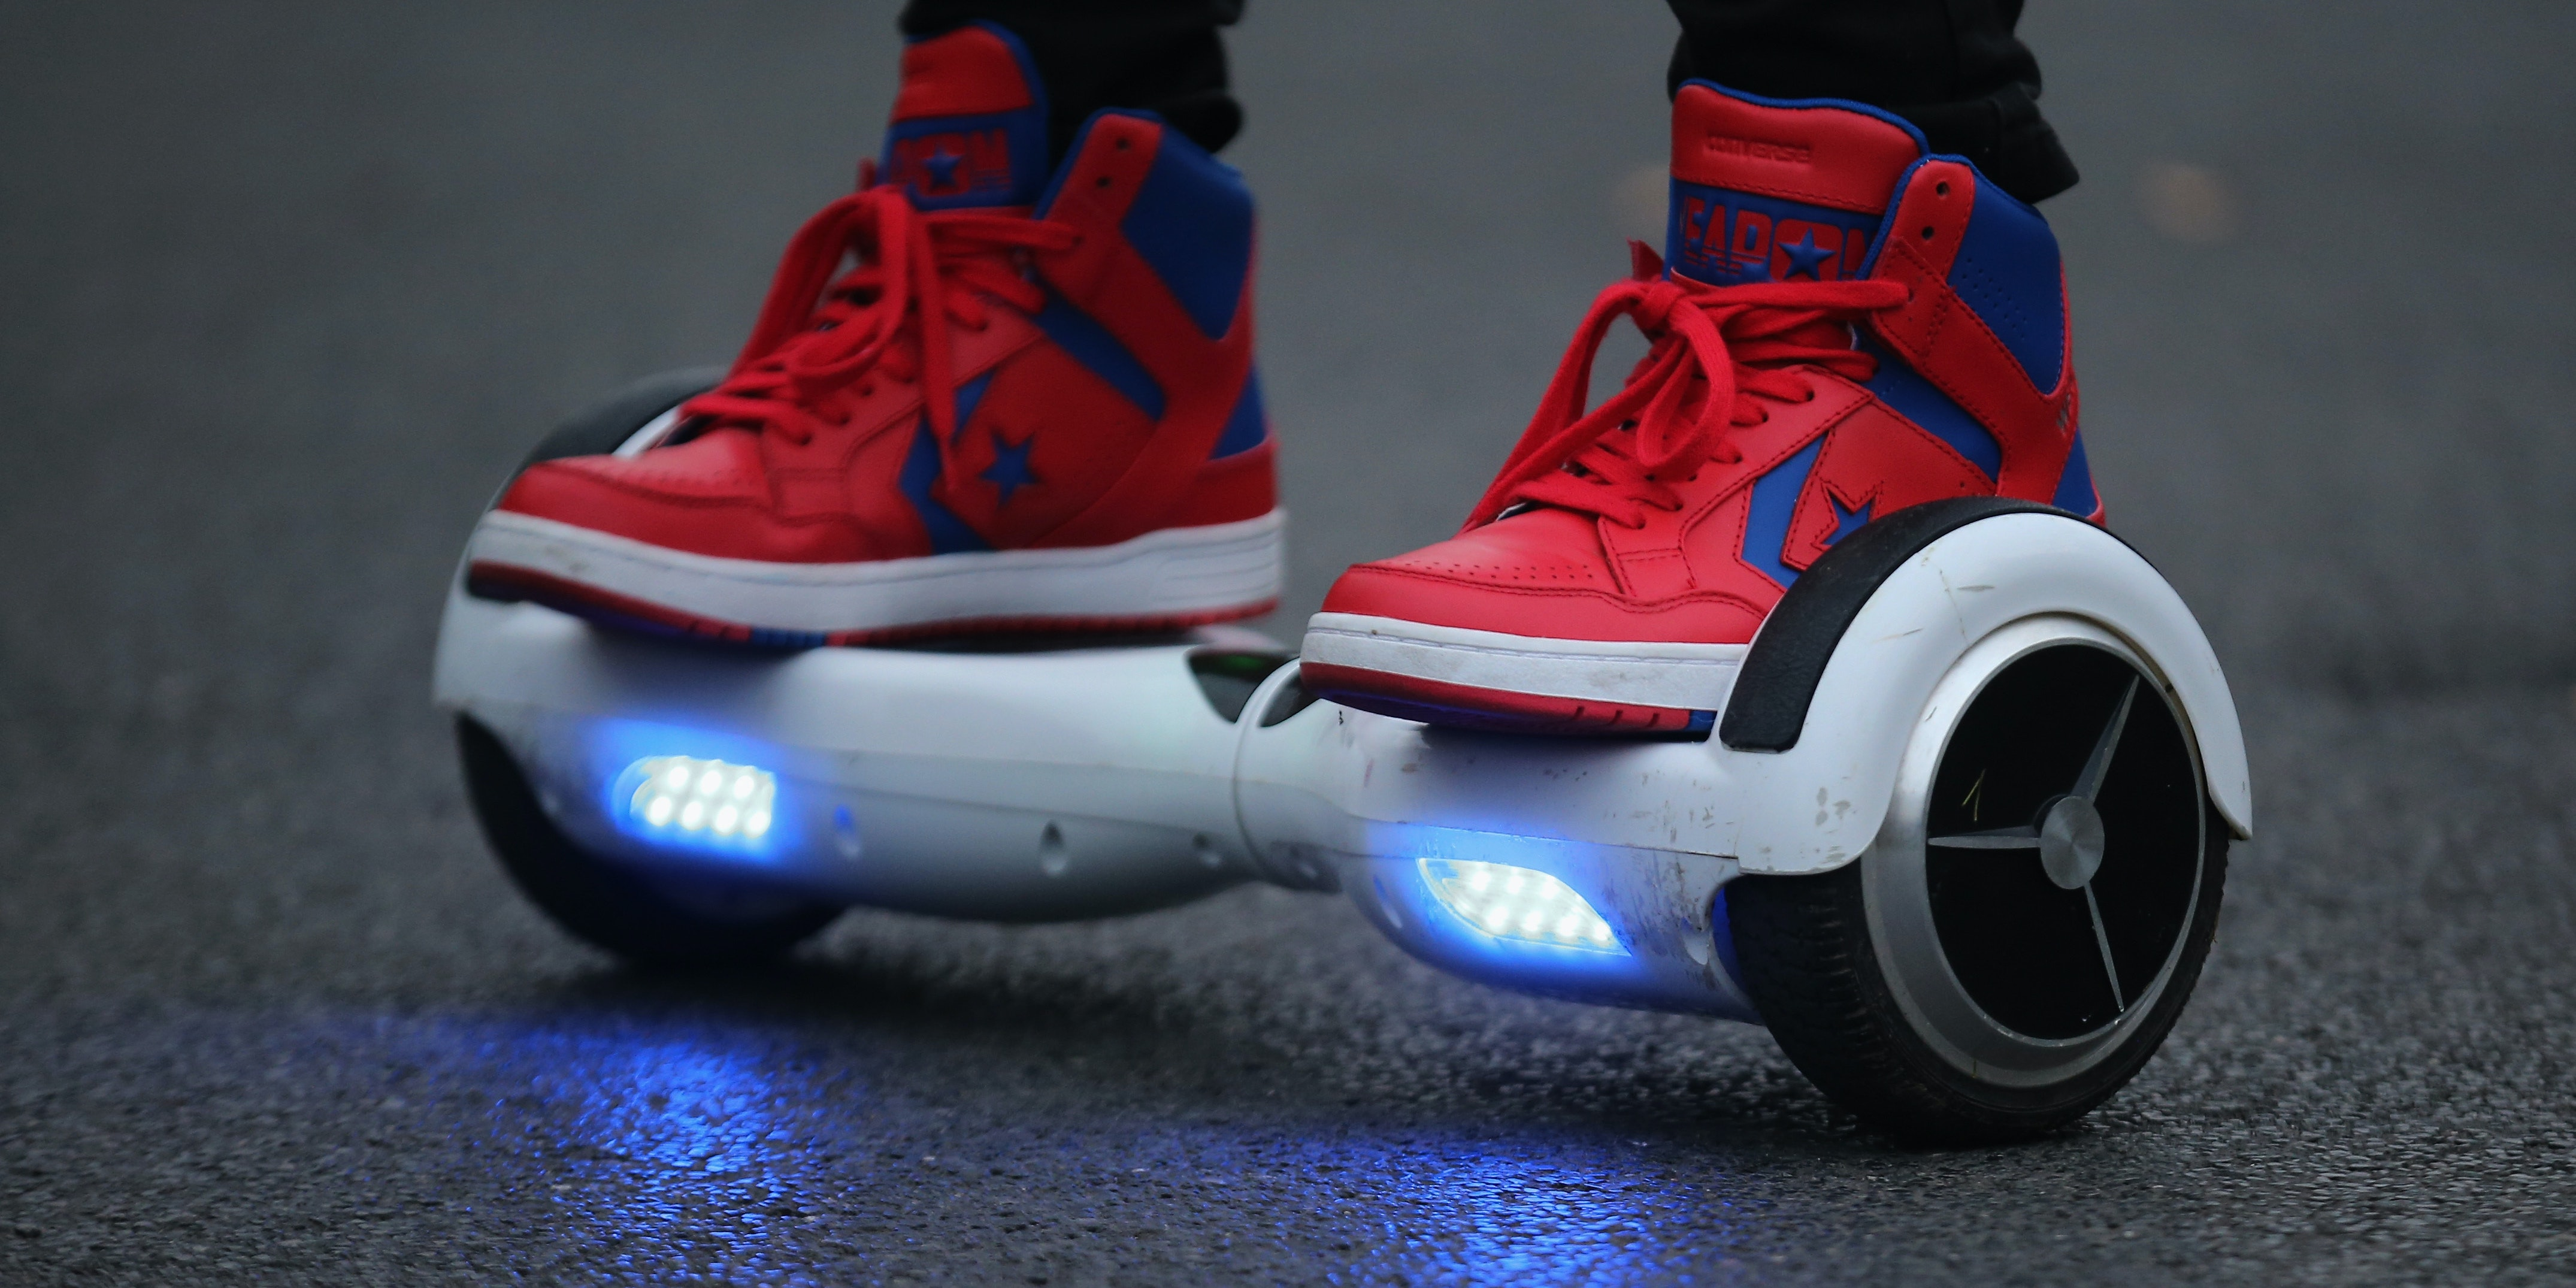 KNUTSFORD, ENGLAND - OCTOBER 13:  A youth poses as he rides a hoverboard, which are also known as self-balancing scooters and balance boards, on October 13, 2015 in Knutsford, England. The British Crown Prosecution Service have declared that the devices are illegal as they are are too unsafe to ride on the road, and too dangerous to ride on the pavement.  (Photo by Christopher Furlong/Getty Images)